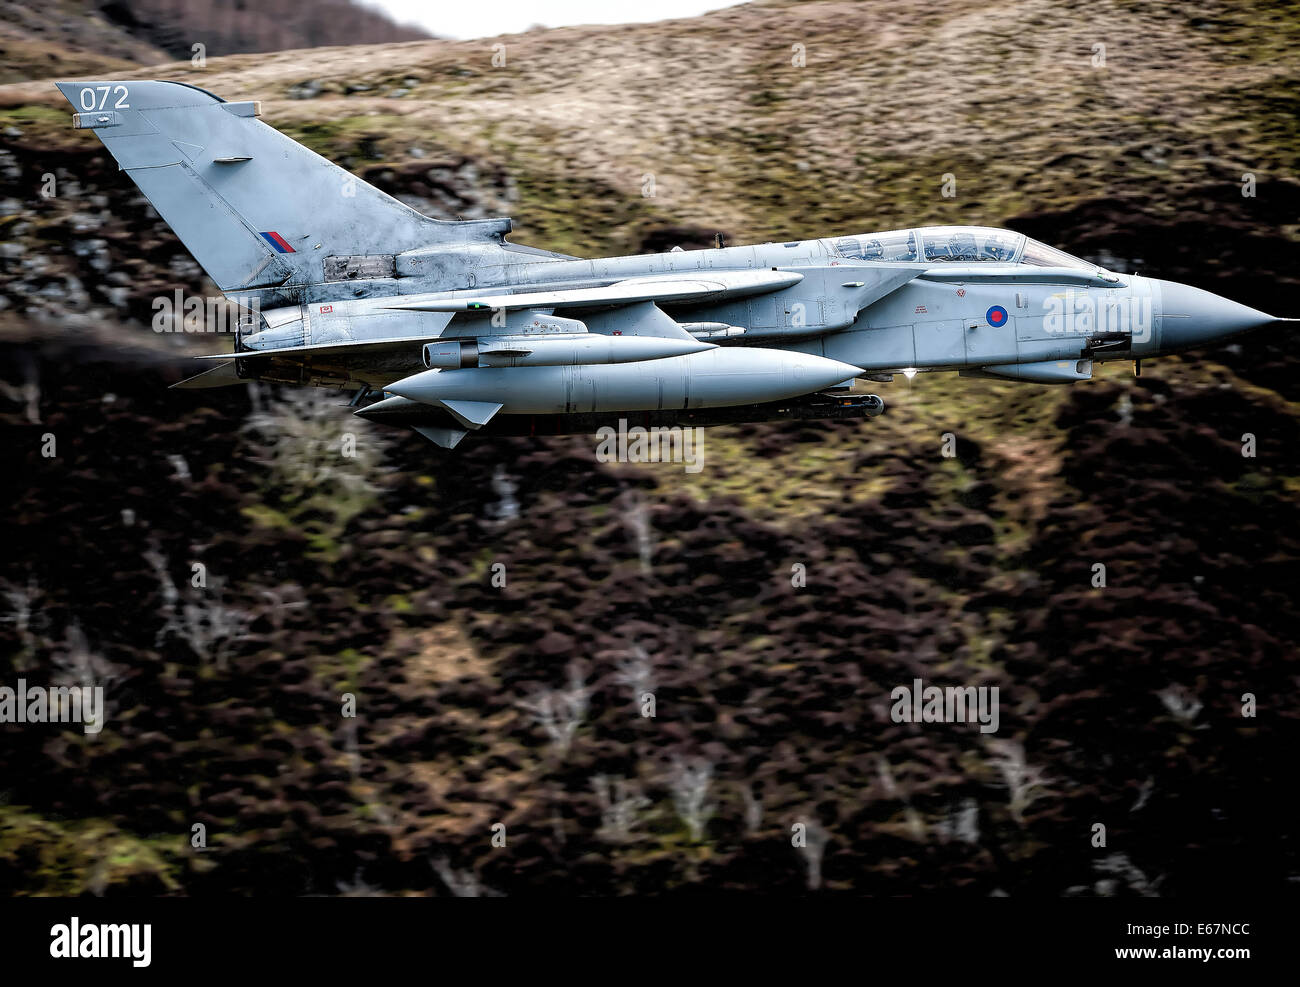 The Tornado GR4 is a variable geometry, two-seat, day or night, all-weather attack aircraft, Stock Photo